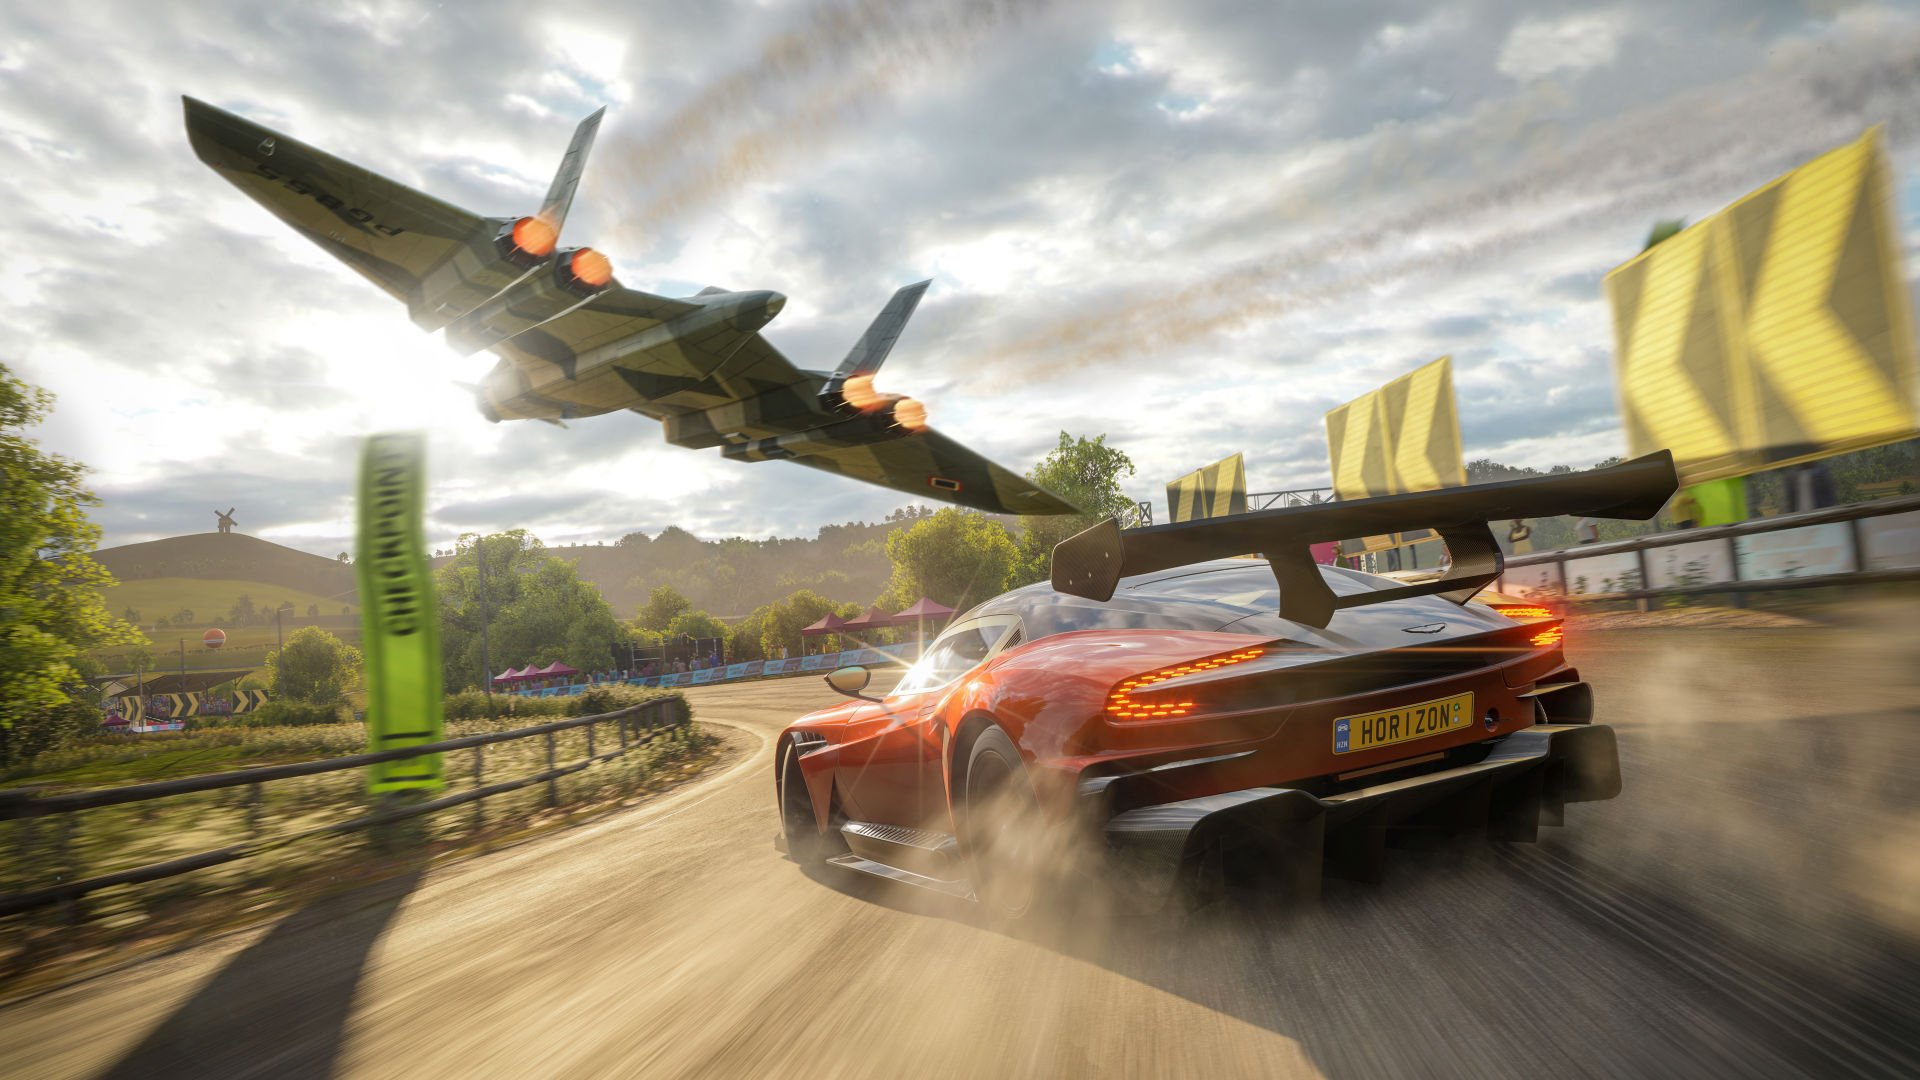 Forza Horizon 4 - fighter flying over drifting car